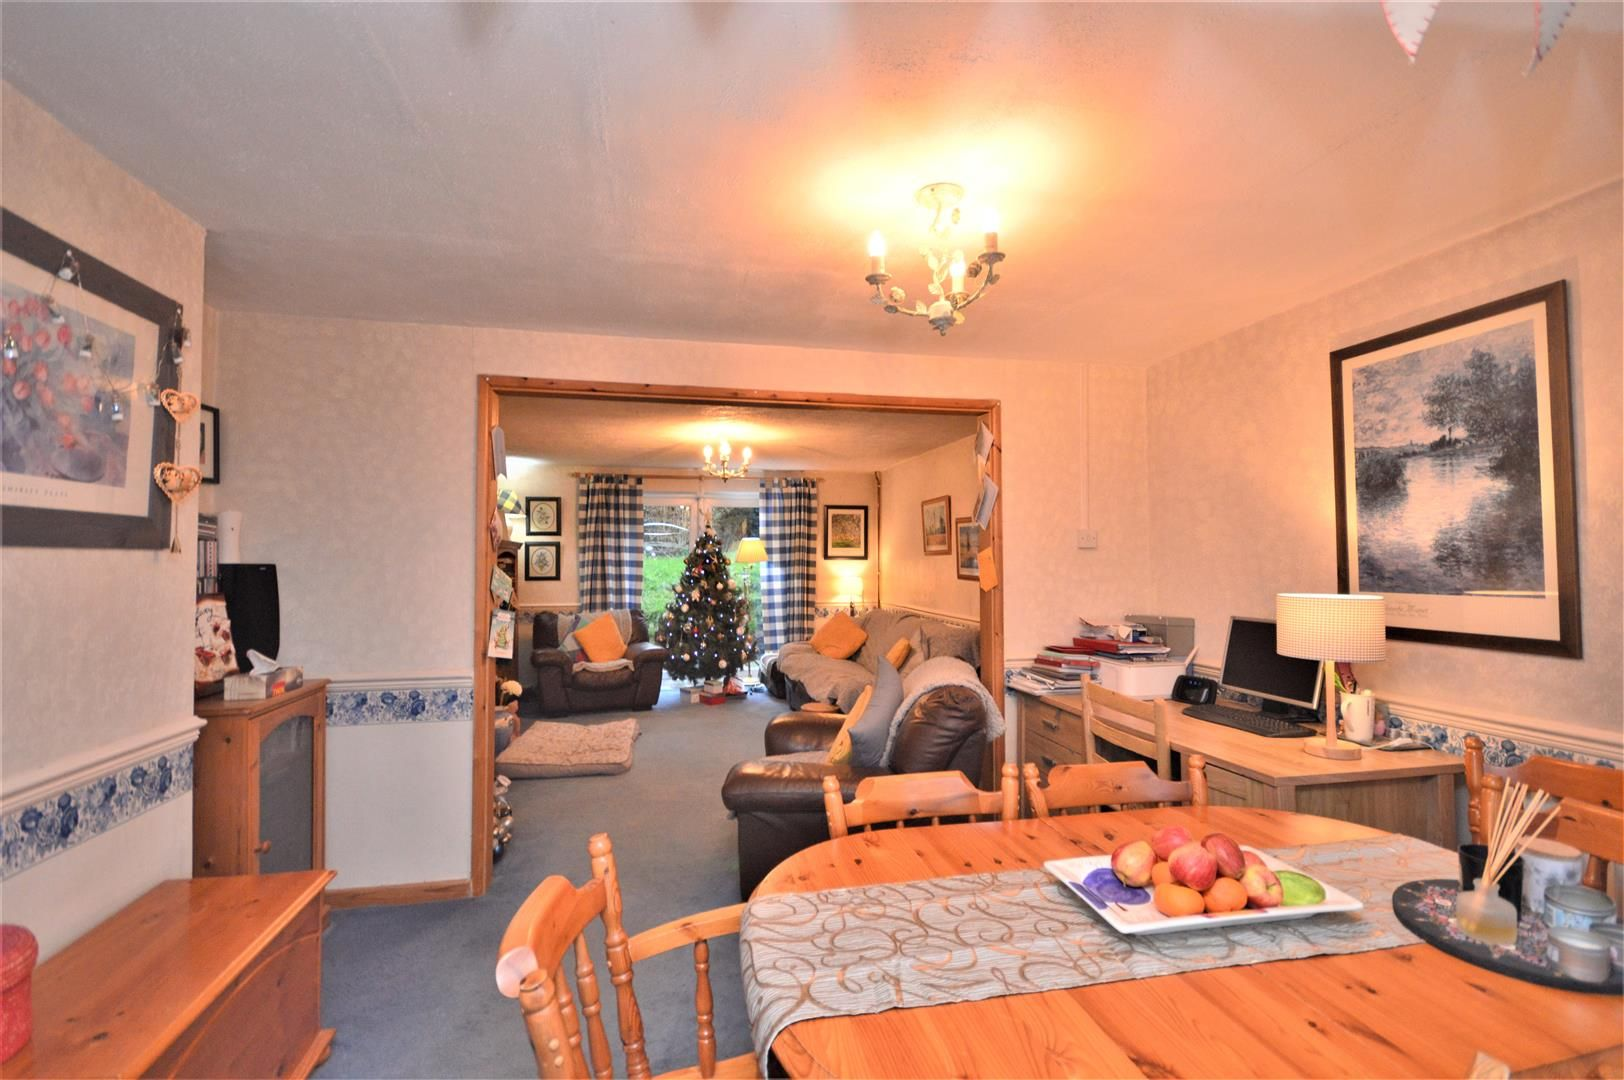 3 bed semi-detached for sale in Much Birch 3